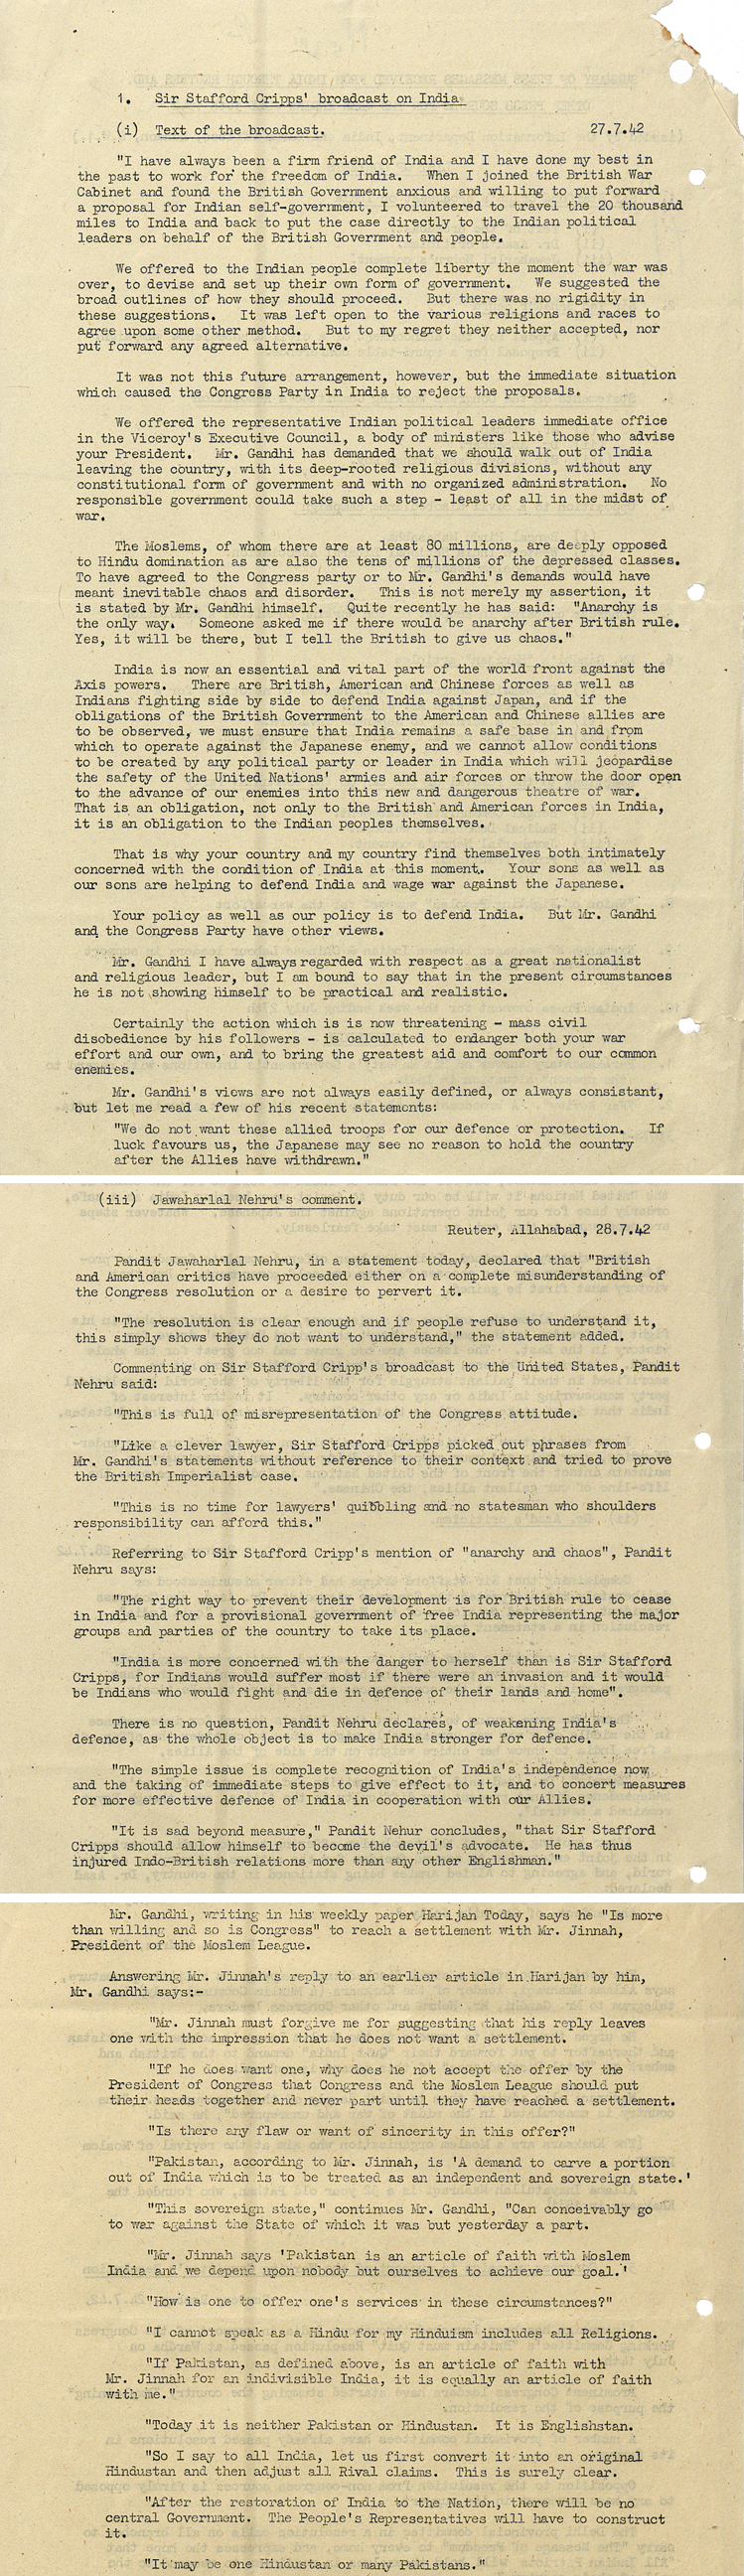 Extract from broadcast to United States by Sir Stafford Cripps' on Britain's position on India, 27 July 1942 with comments from Nehru and Gandhi (CAB 127/71)